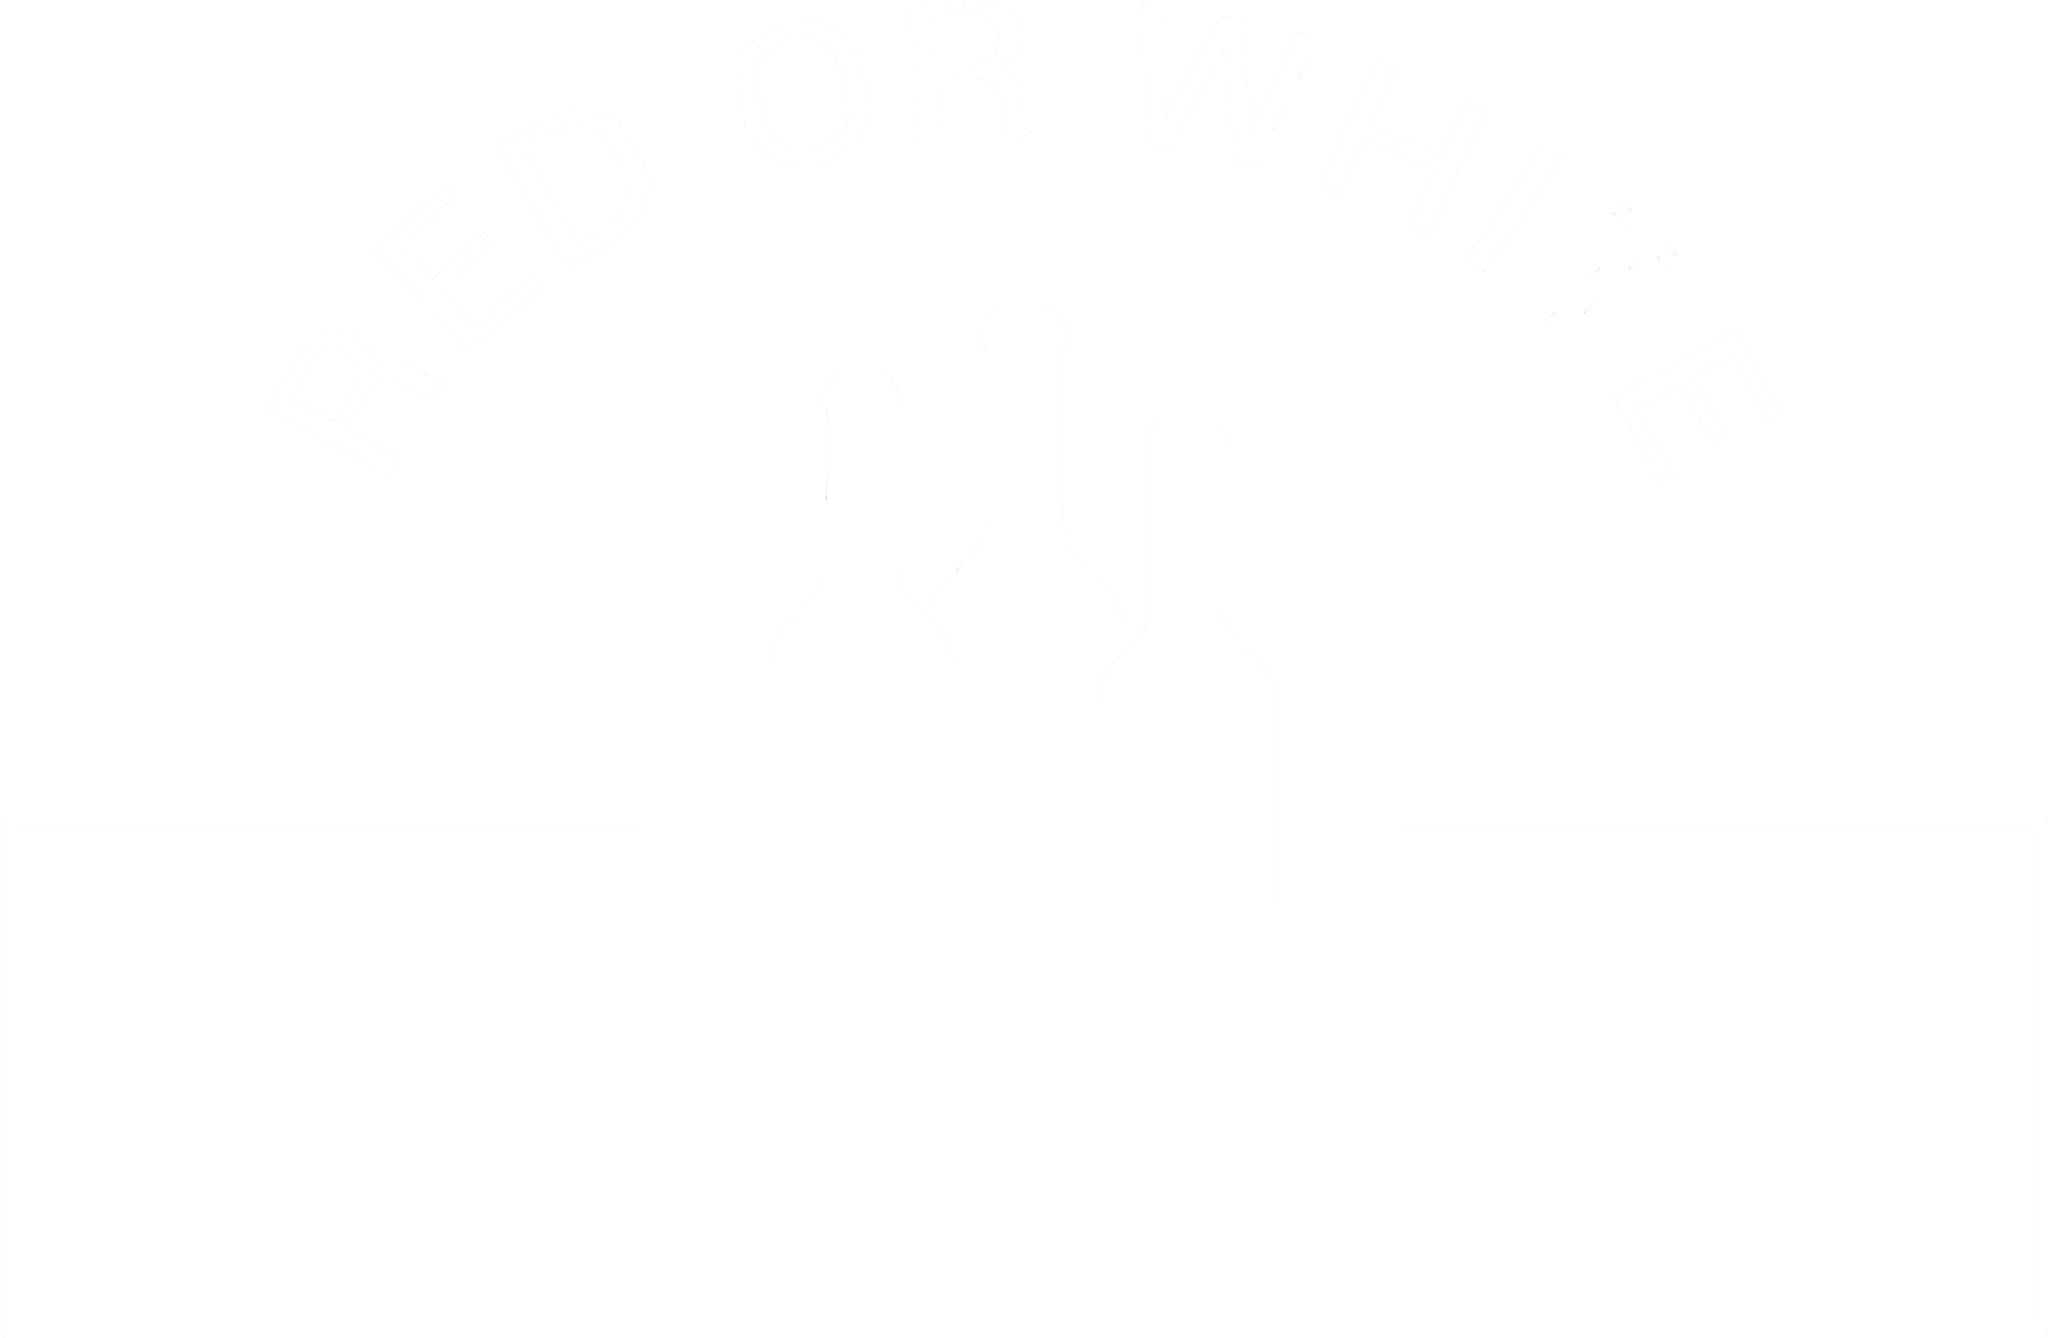 https://www.redorwhite.shop